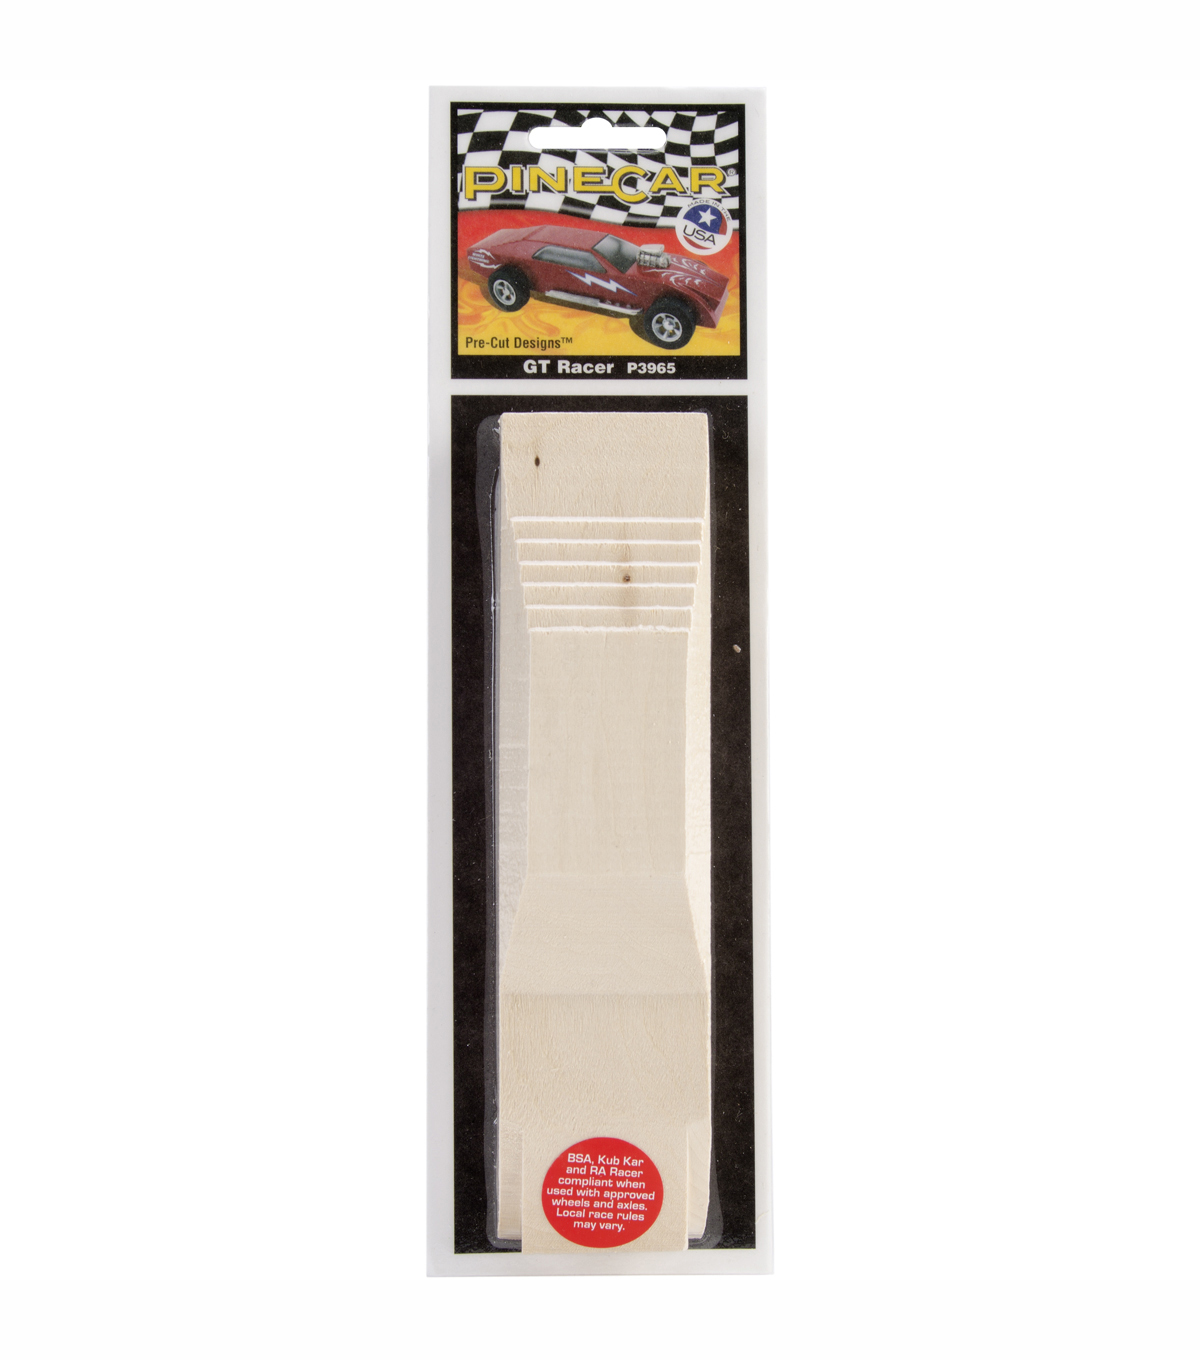 Pinewood Derby Pre-Cut Car-GT Racer